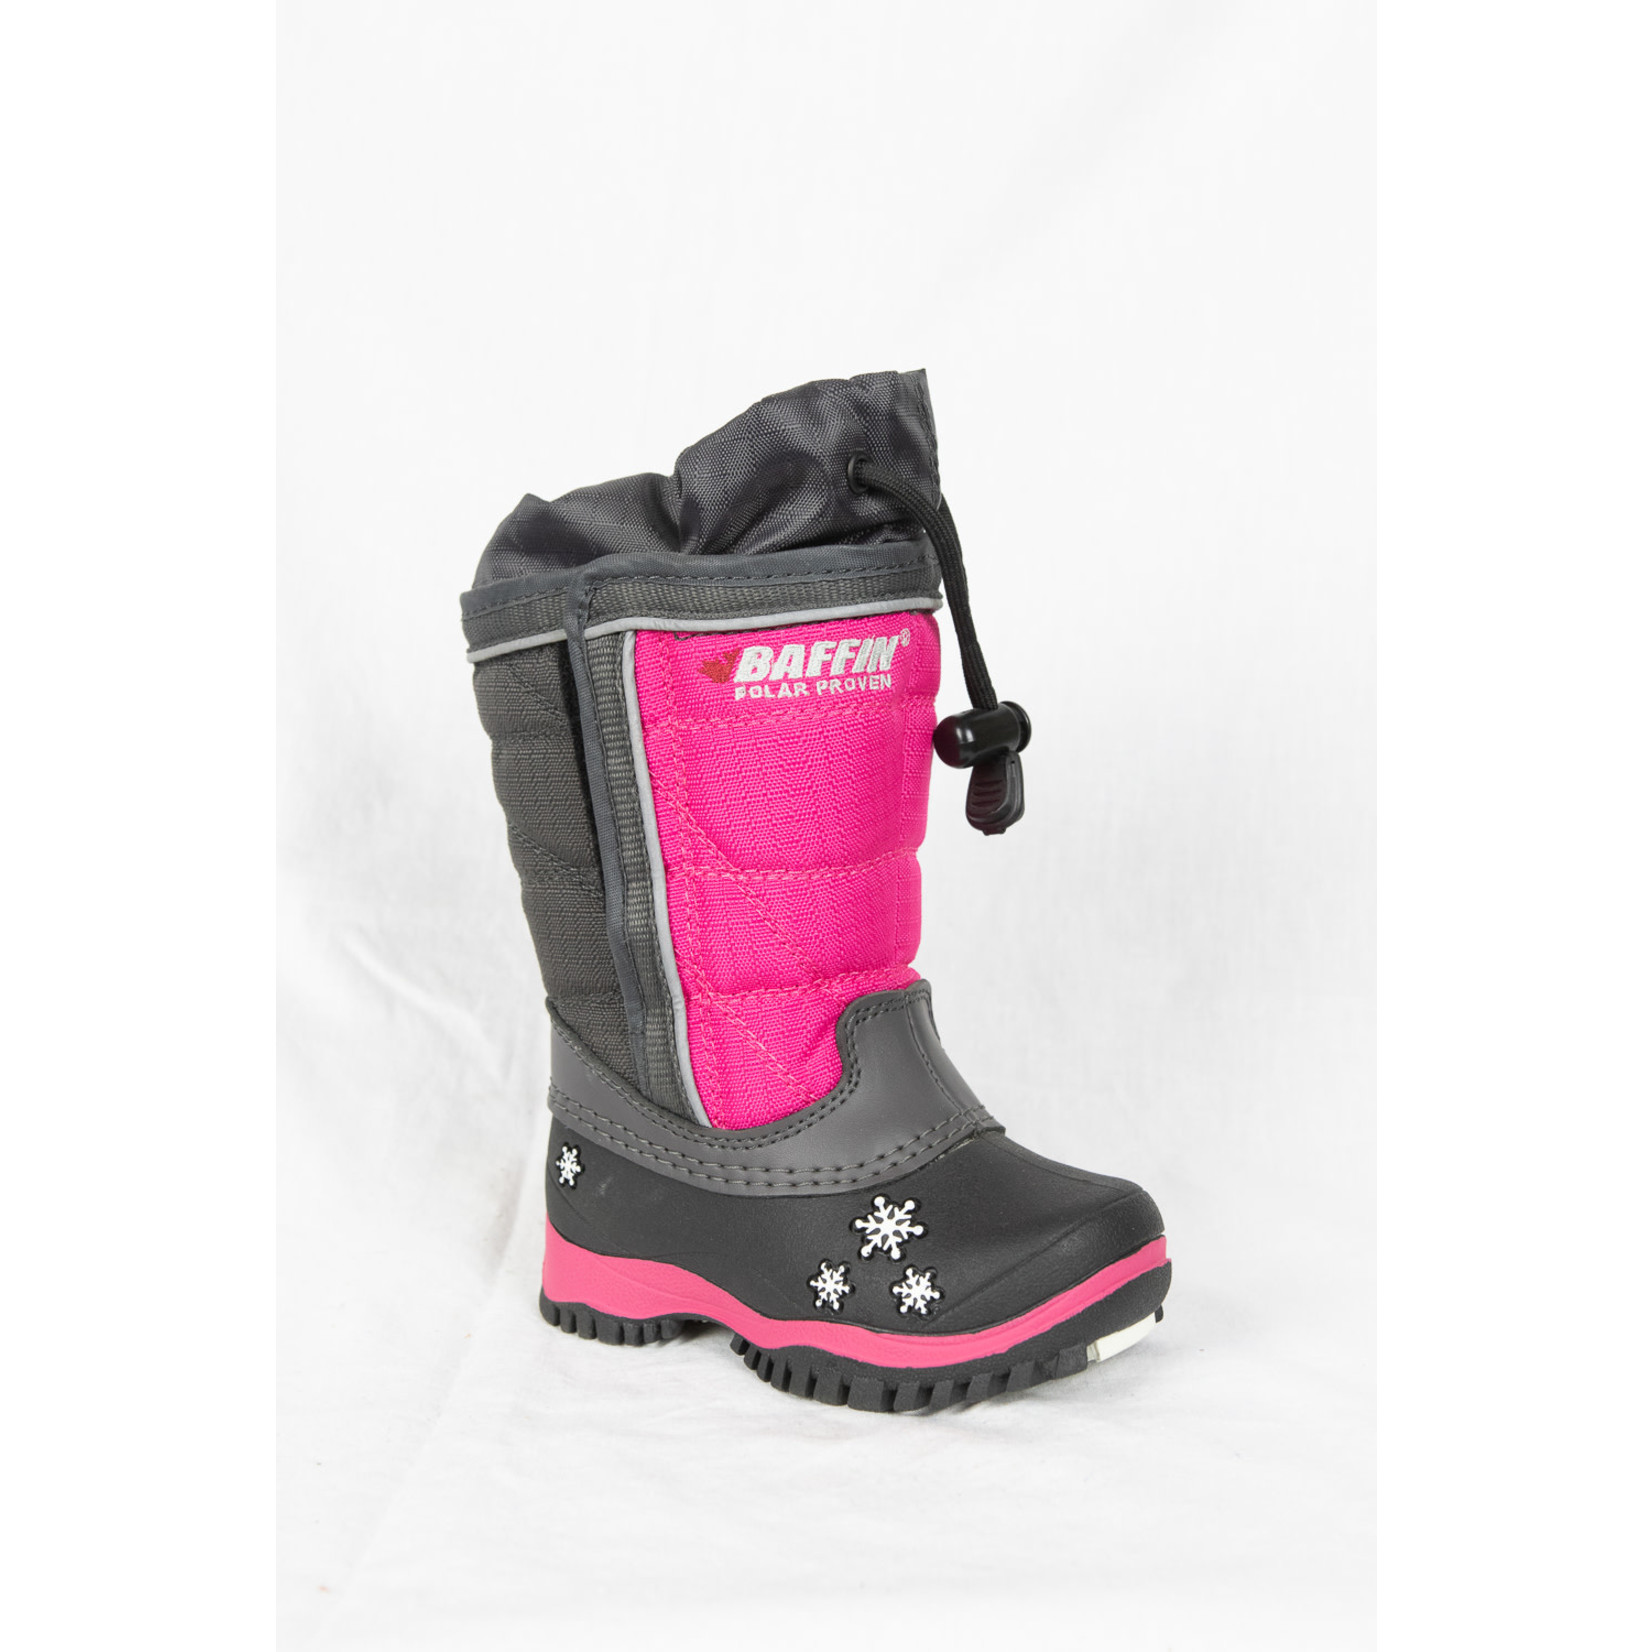 Baffin Baffin Winter Girls Boots Cheree -40C Kids With Boot Liners